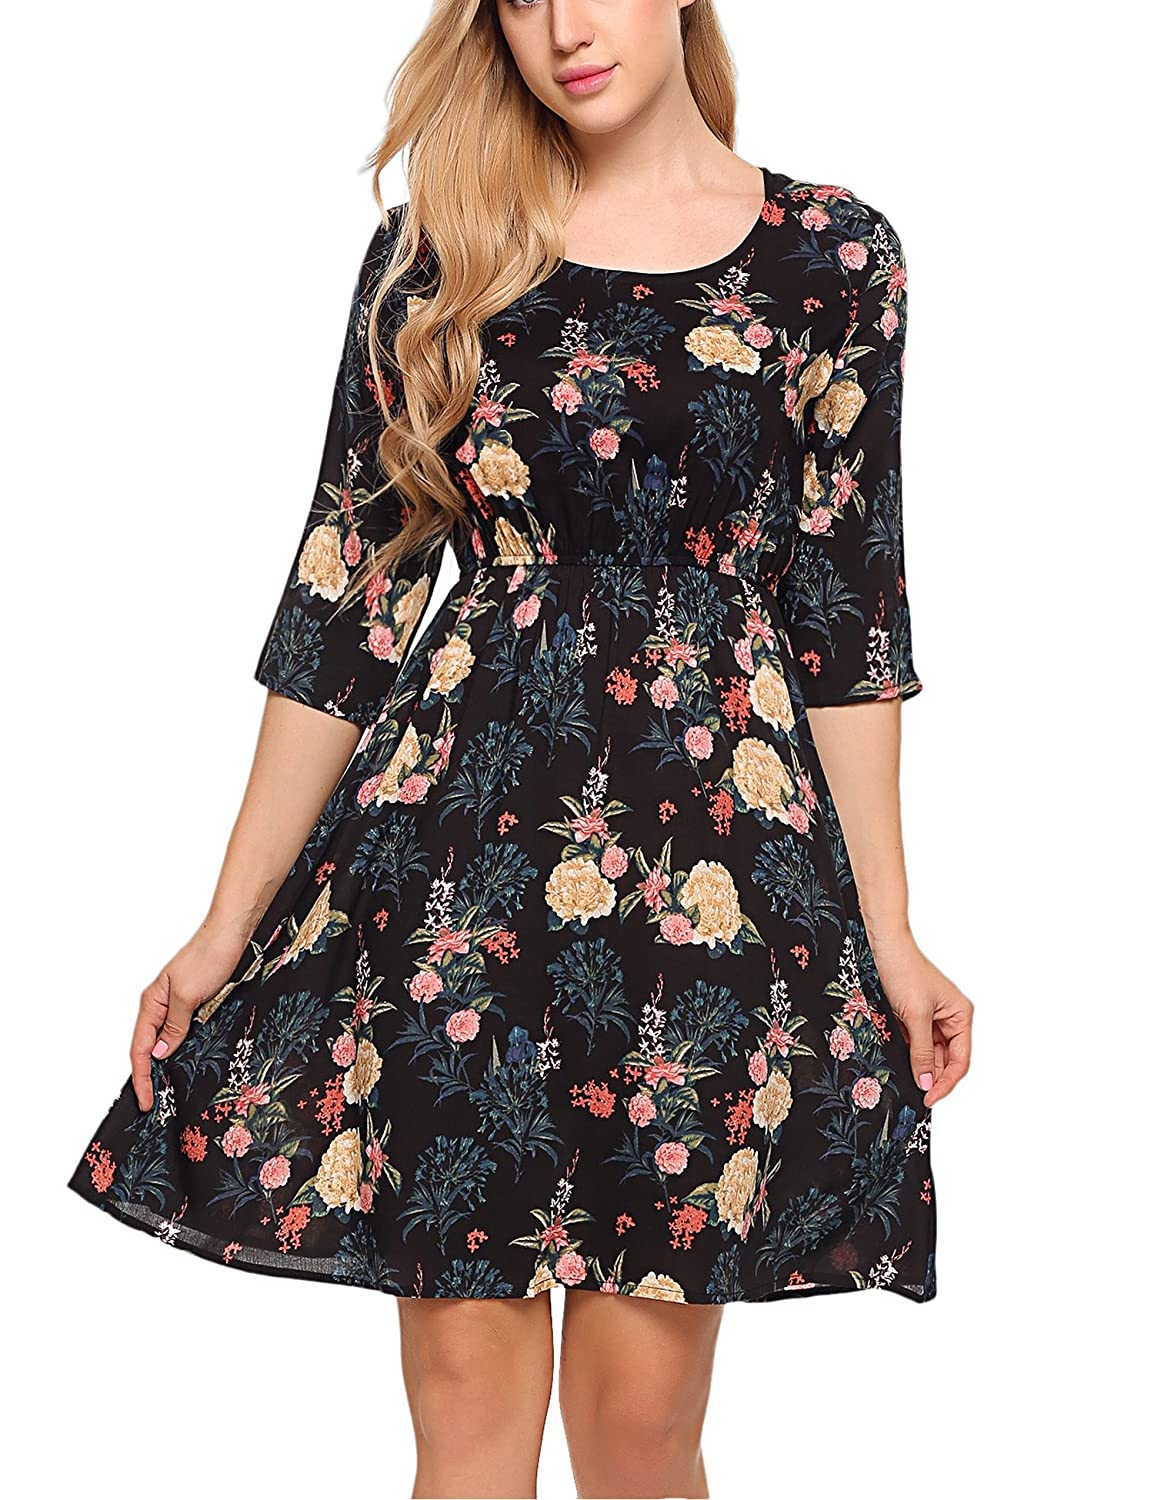 a15ee1d73 Beyove Women's Print Tunic Top Dress, 3/4 Sleeve Summer Casual T Shirt Midi  Dresses